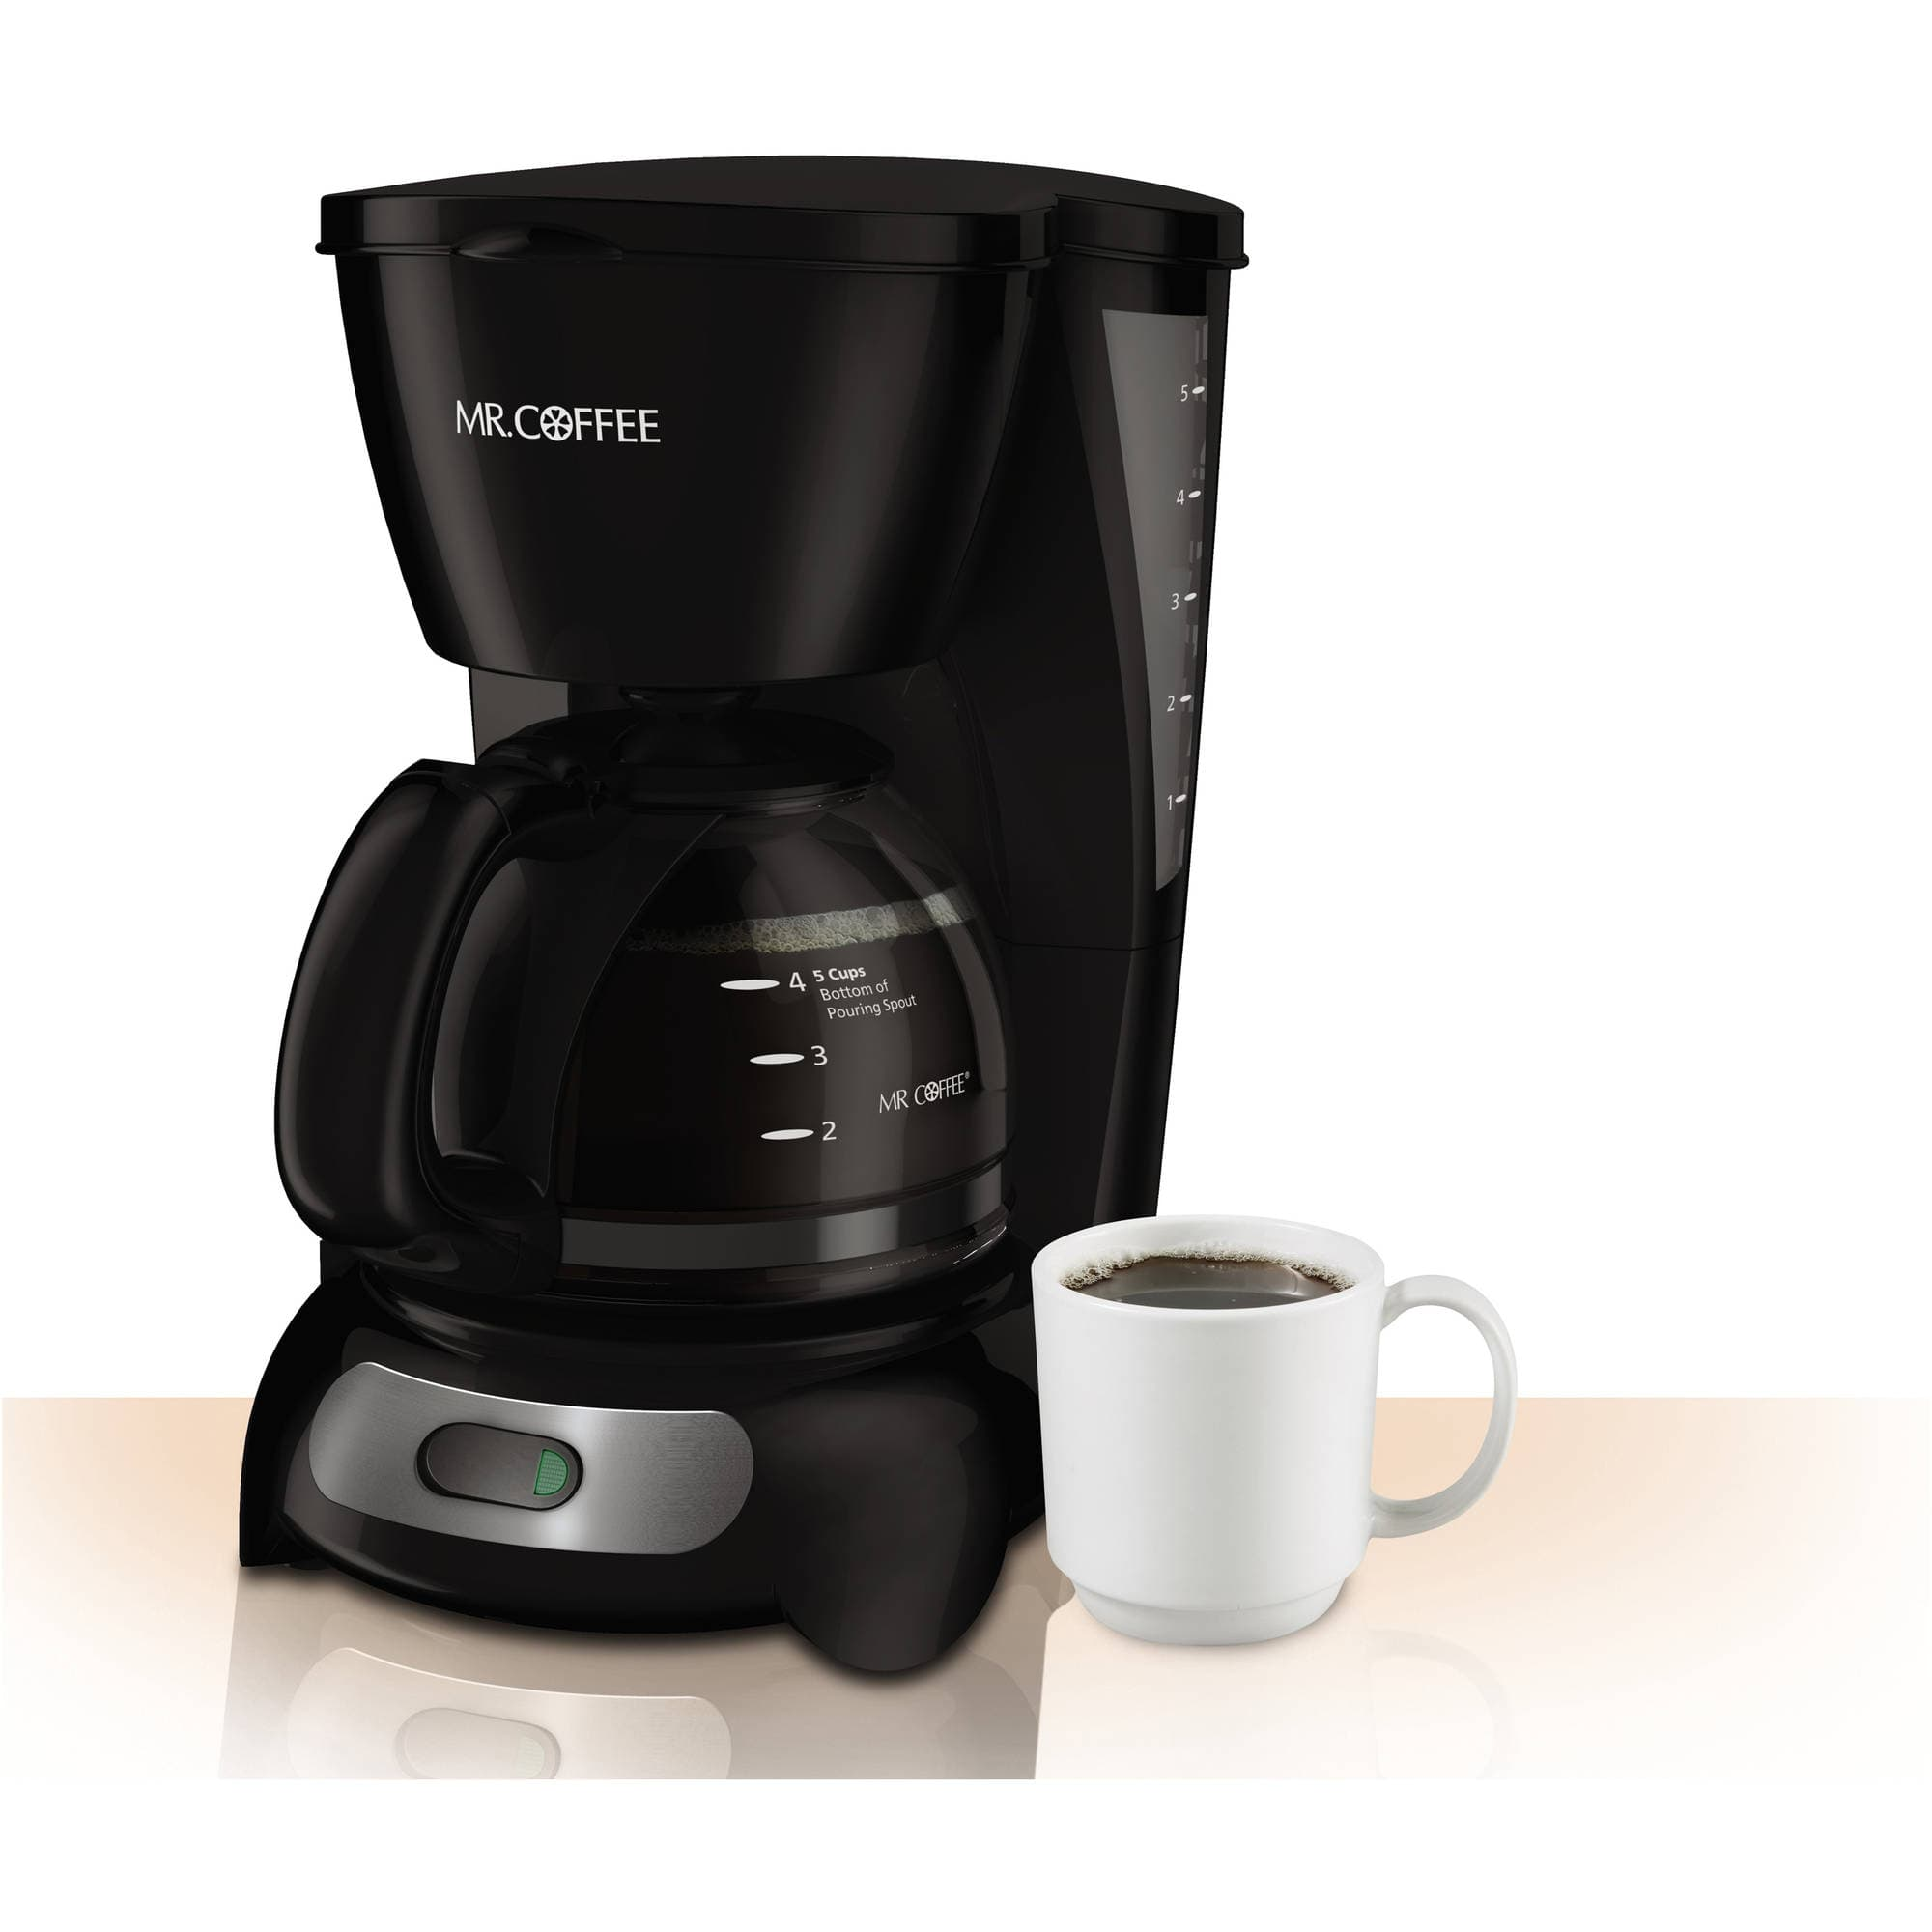 Mr. Coffee 5-Cup Coffeemaker (Black) - Page 3 - Slickdeals.net